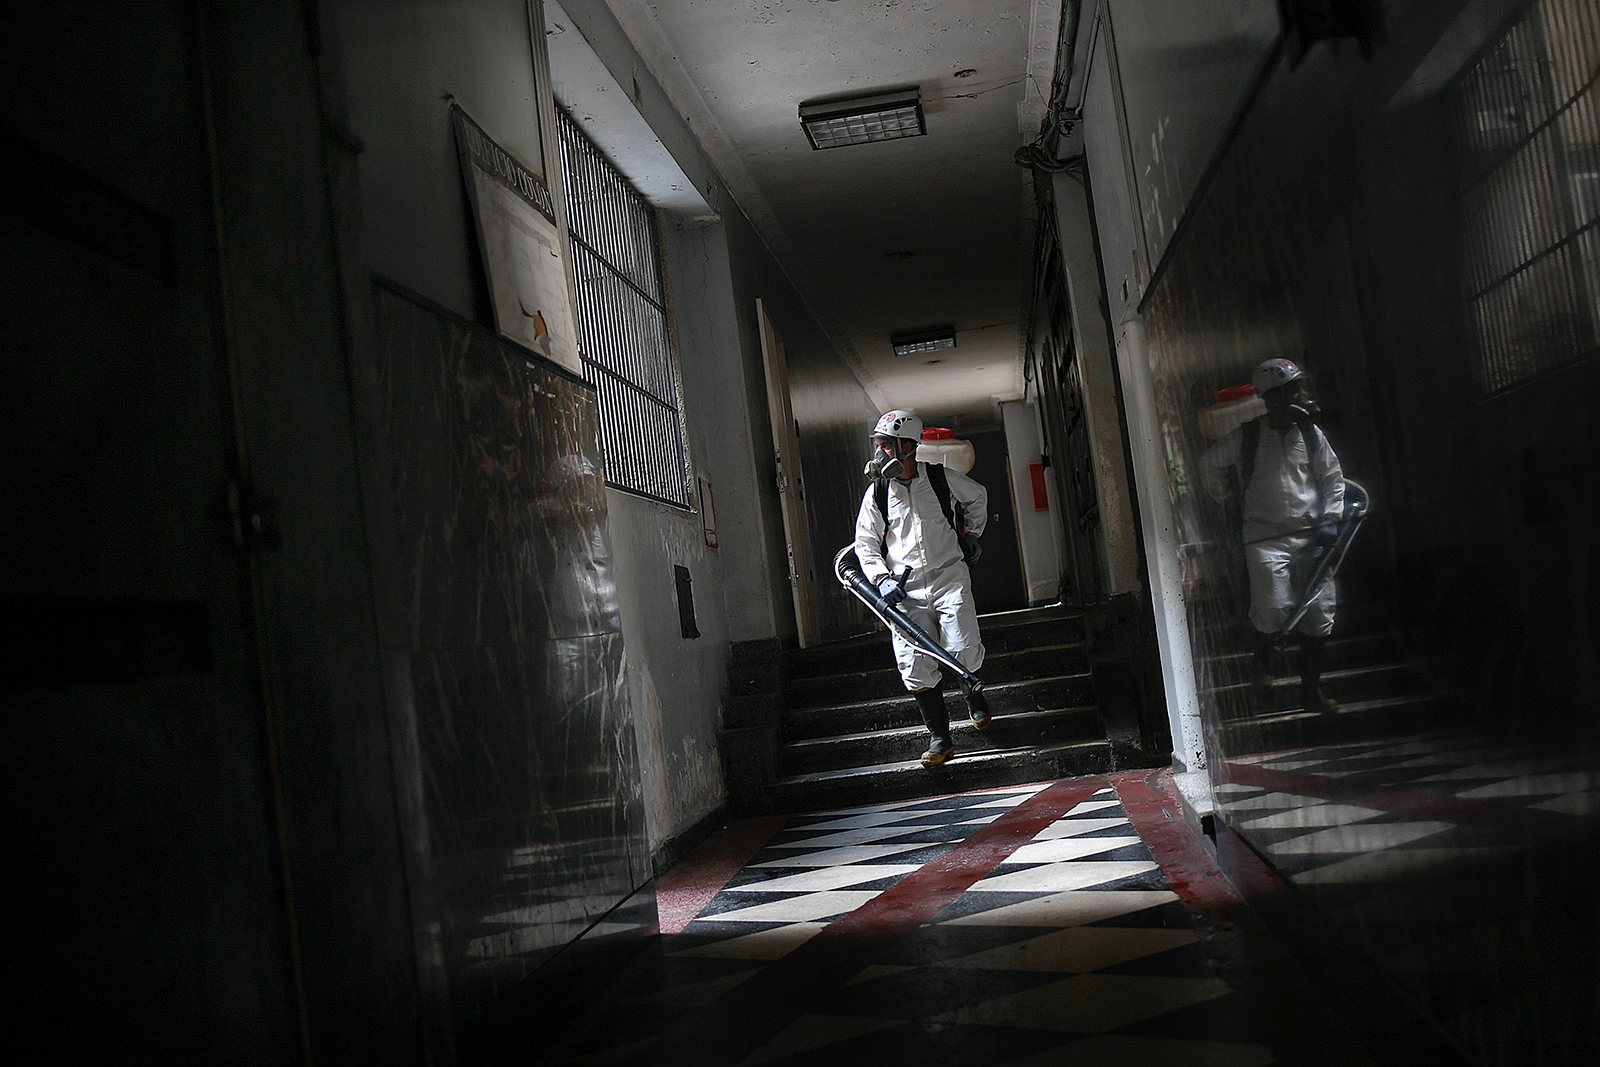 A city worker sprays disinfectant in a building in the Chacao neighborhood of Caracas, Venezuela, Saturday, July 18.